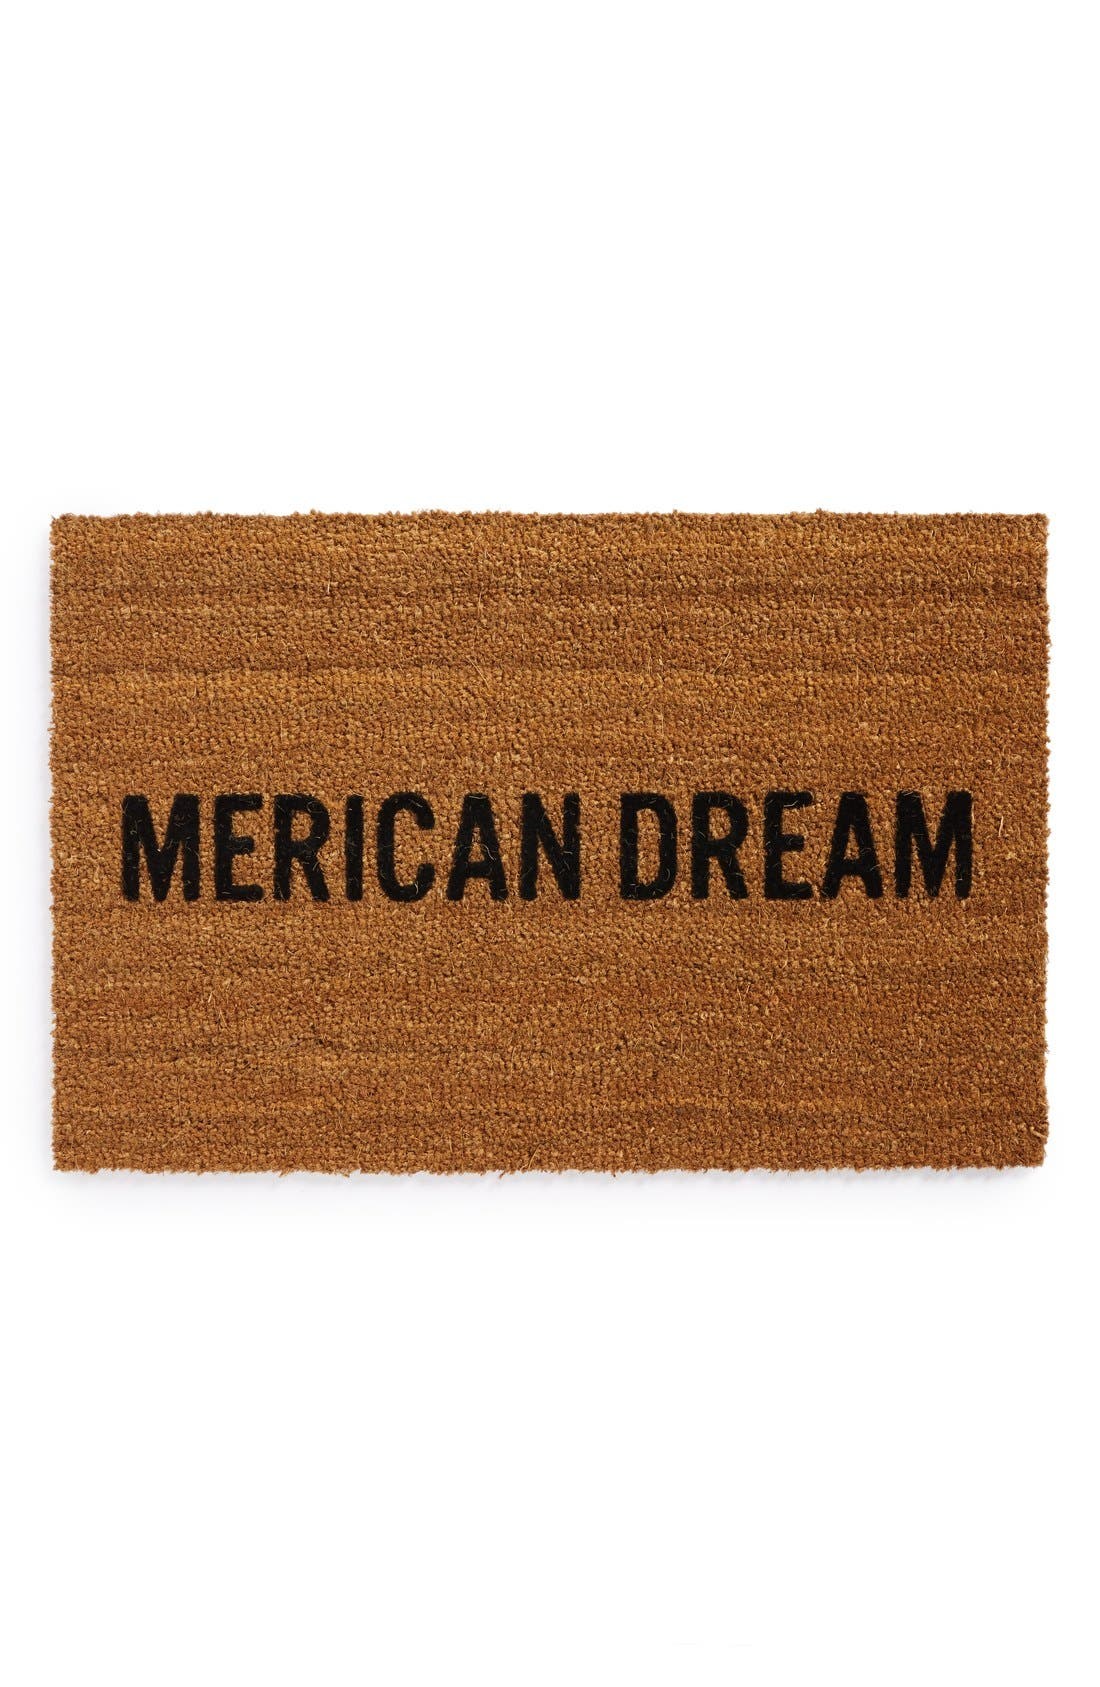 'Merican Dream' Doormat,                         Main,                         color, BROWN